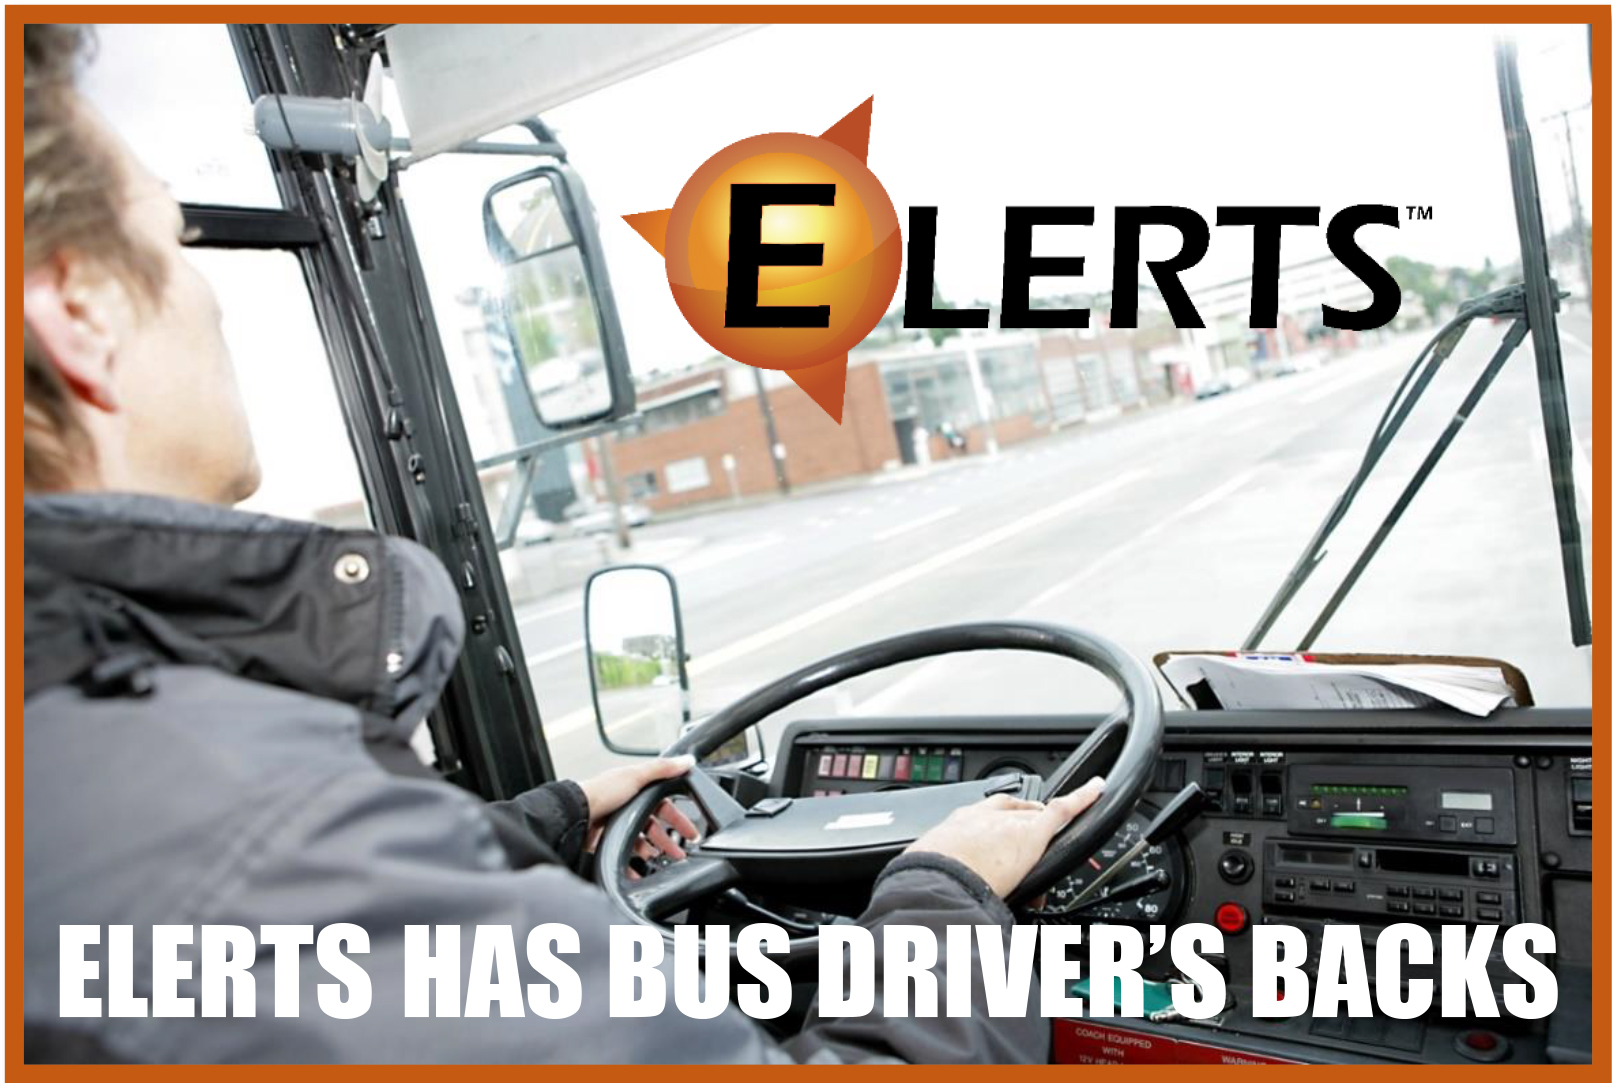 ELERTS has your Bus Driver's back final